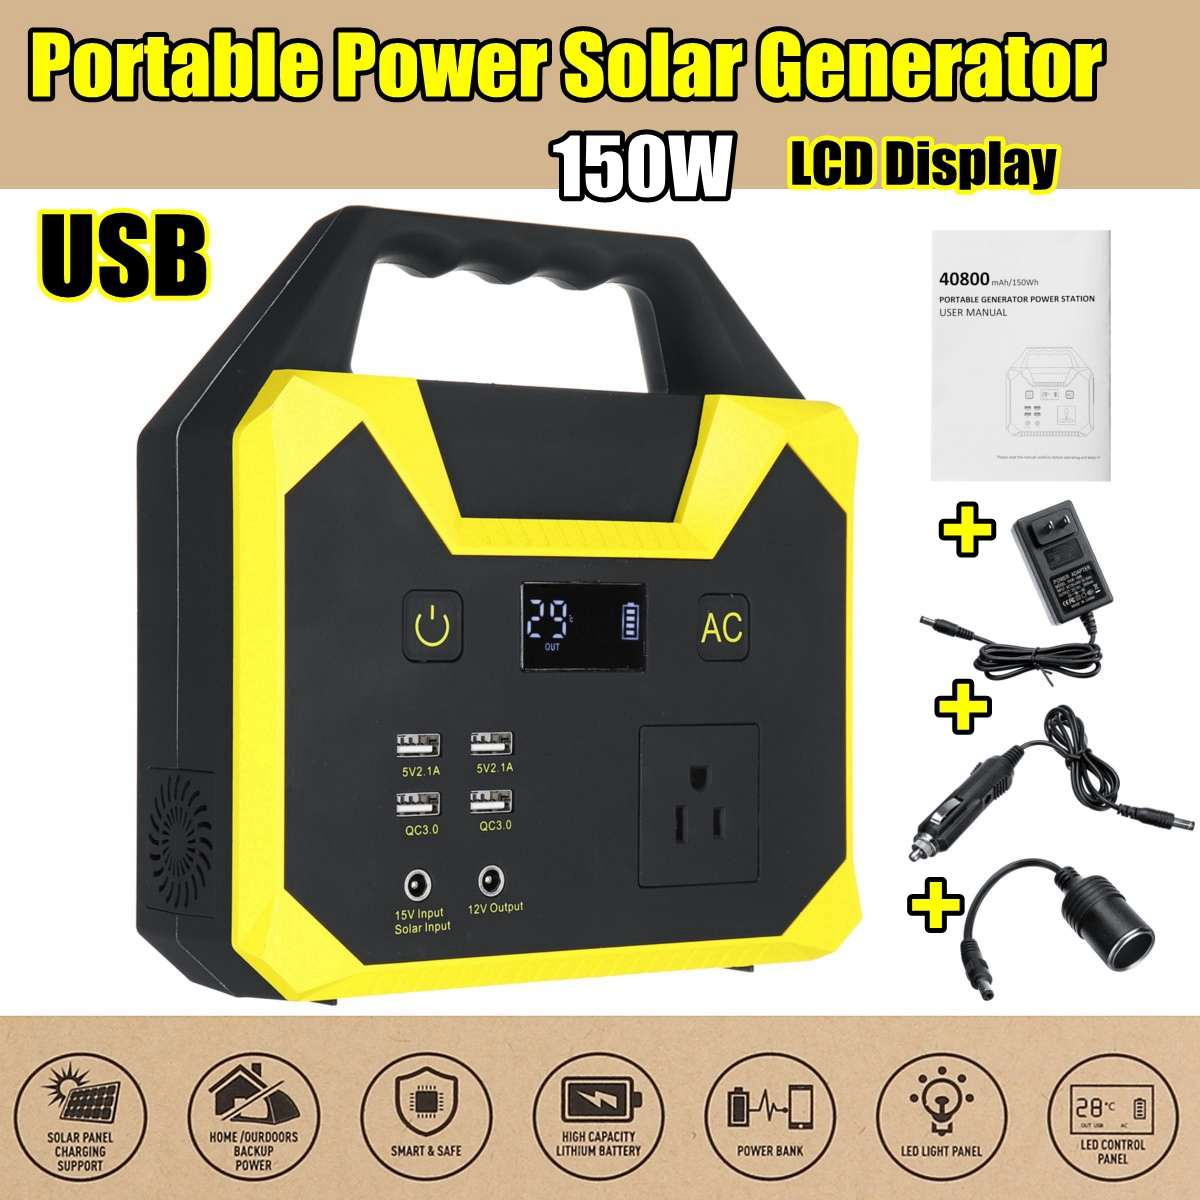 UPS Portable Generator Power Supply 220V 40800mah 150WH 200W 15A Solar Energy Storage USB Charger Portable Power Solar GeneratorUPS Portable Generator Power Supply 220V 40800mah 150WH 200W 15A Solar Energy Storage USB Charger Portable Power Solar Generator